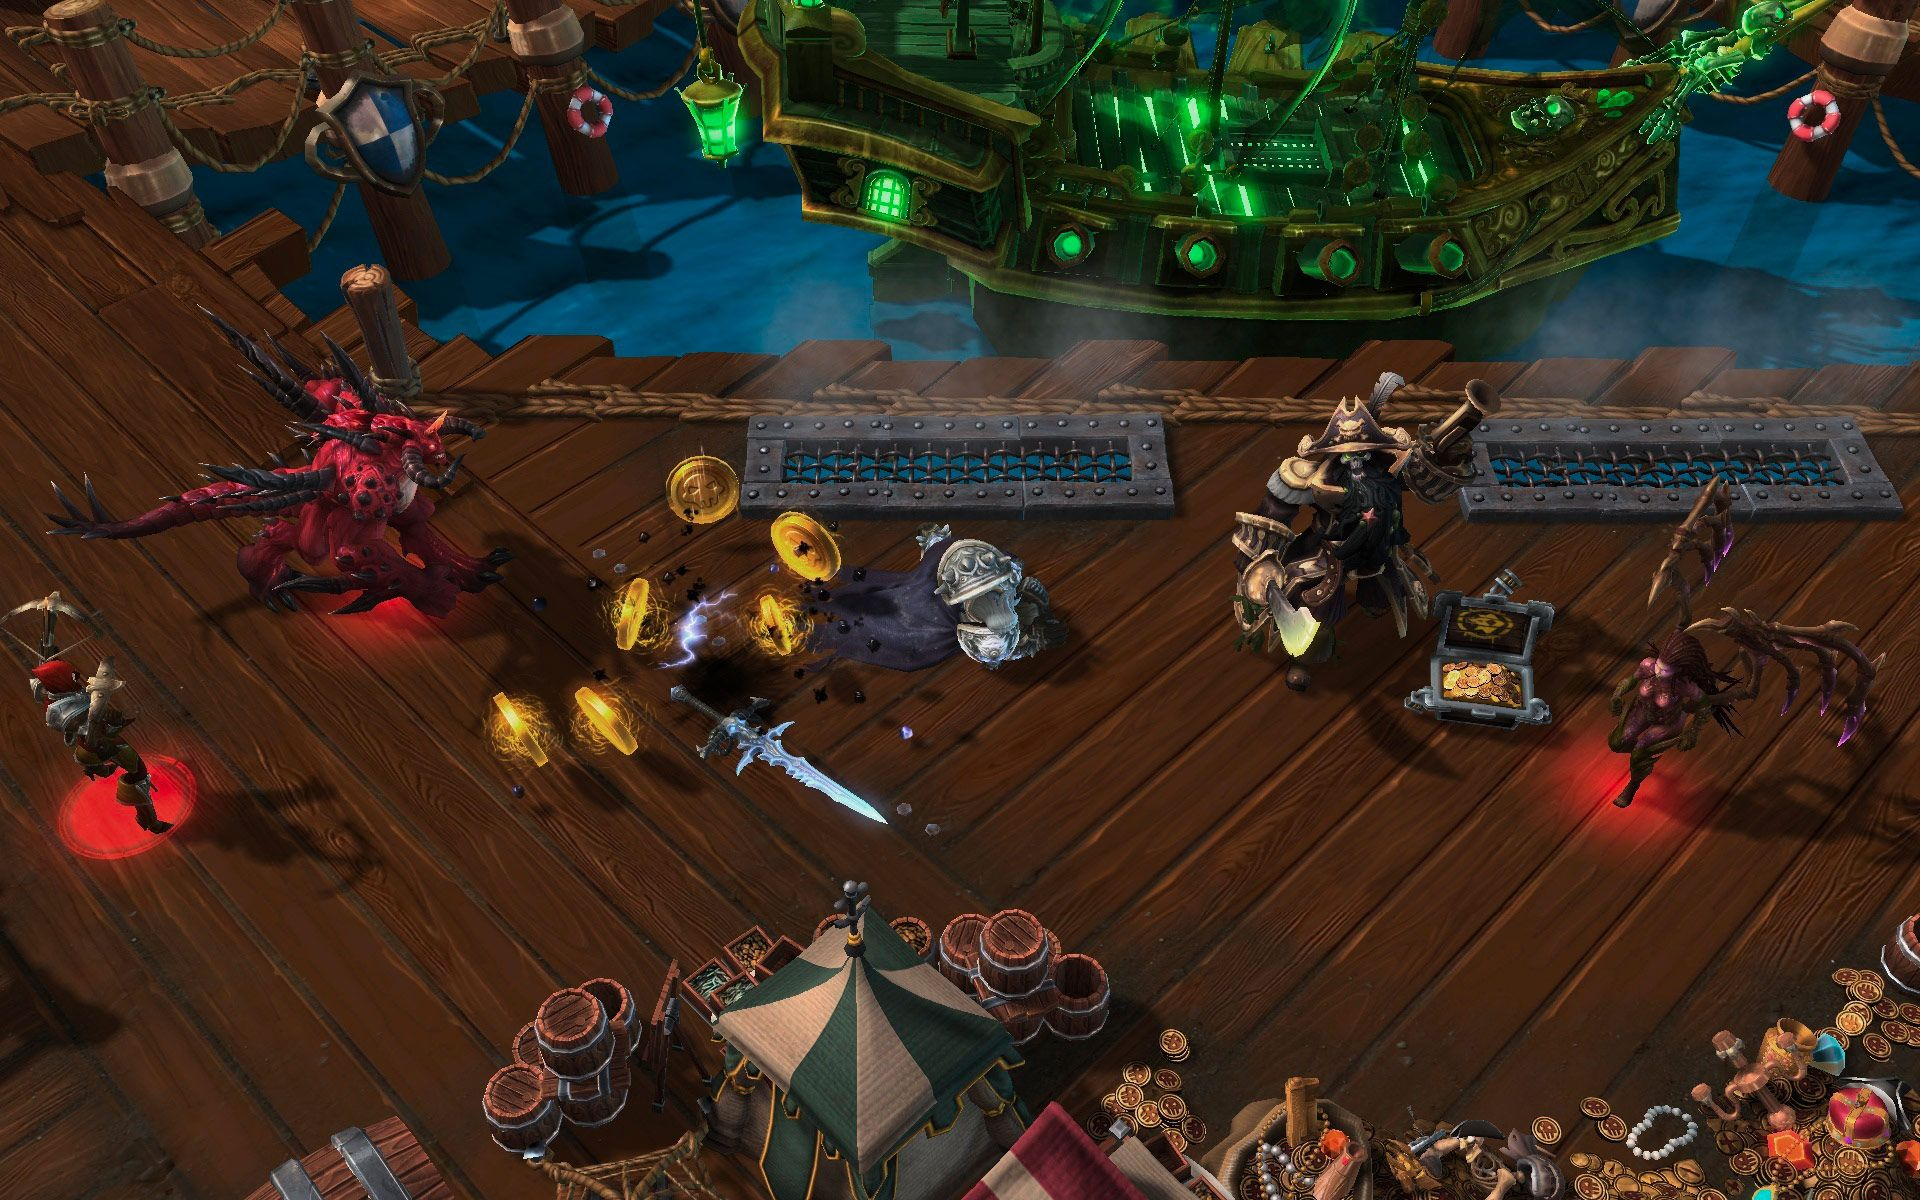 heroes of the storm review image 2